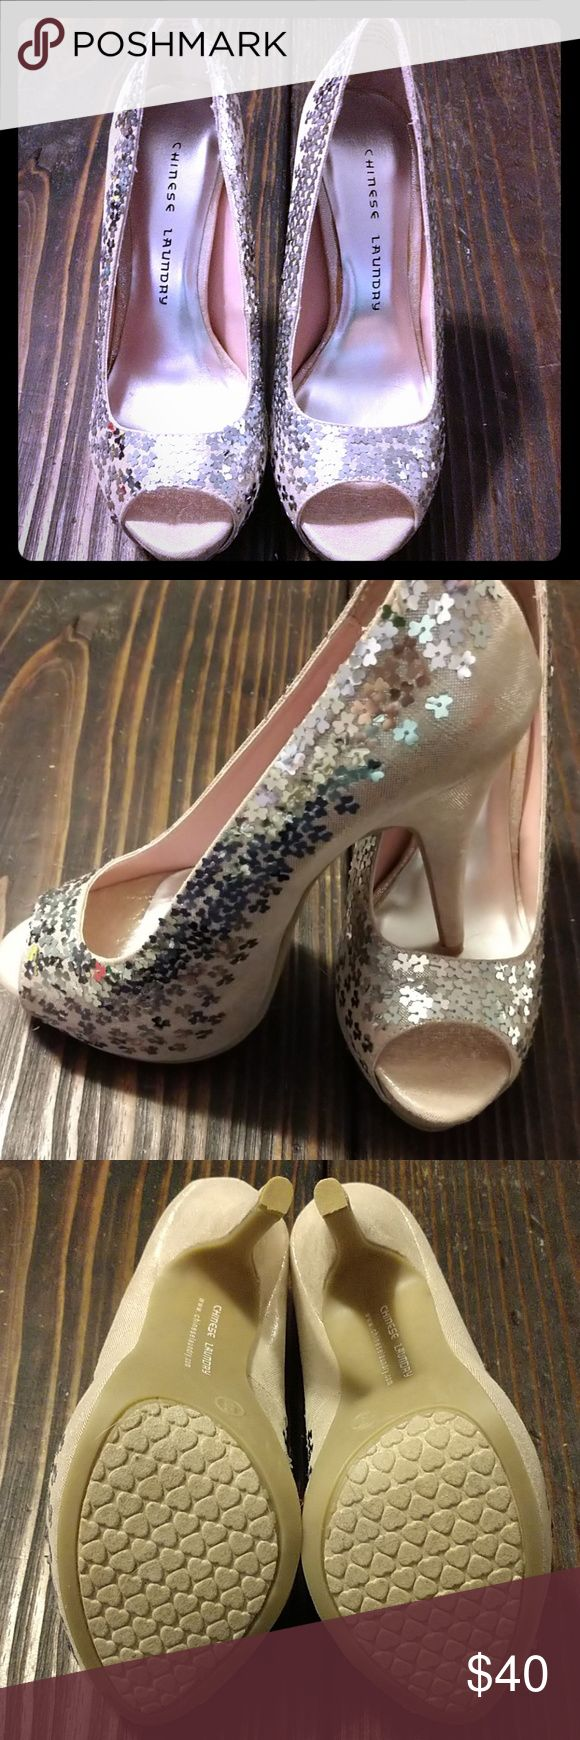 NWOT Chinese Laundry Peep Toe Pumps NWOT. Pinky, peachy sparkly fabric peep toe platform pumps. No box. Chinese Laundry Shoes Heels